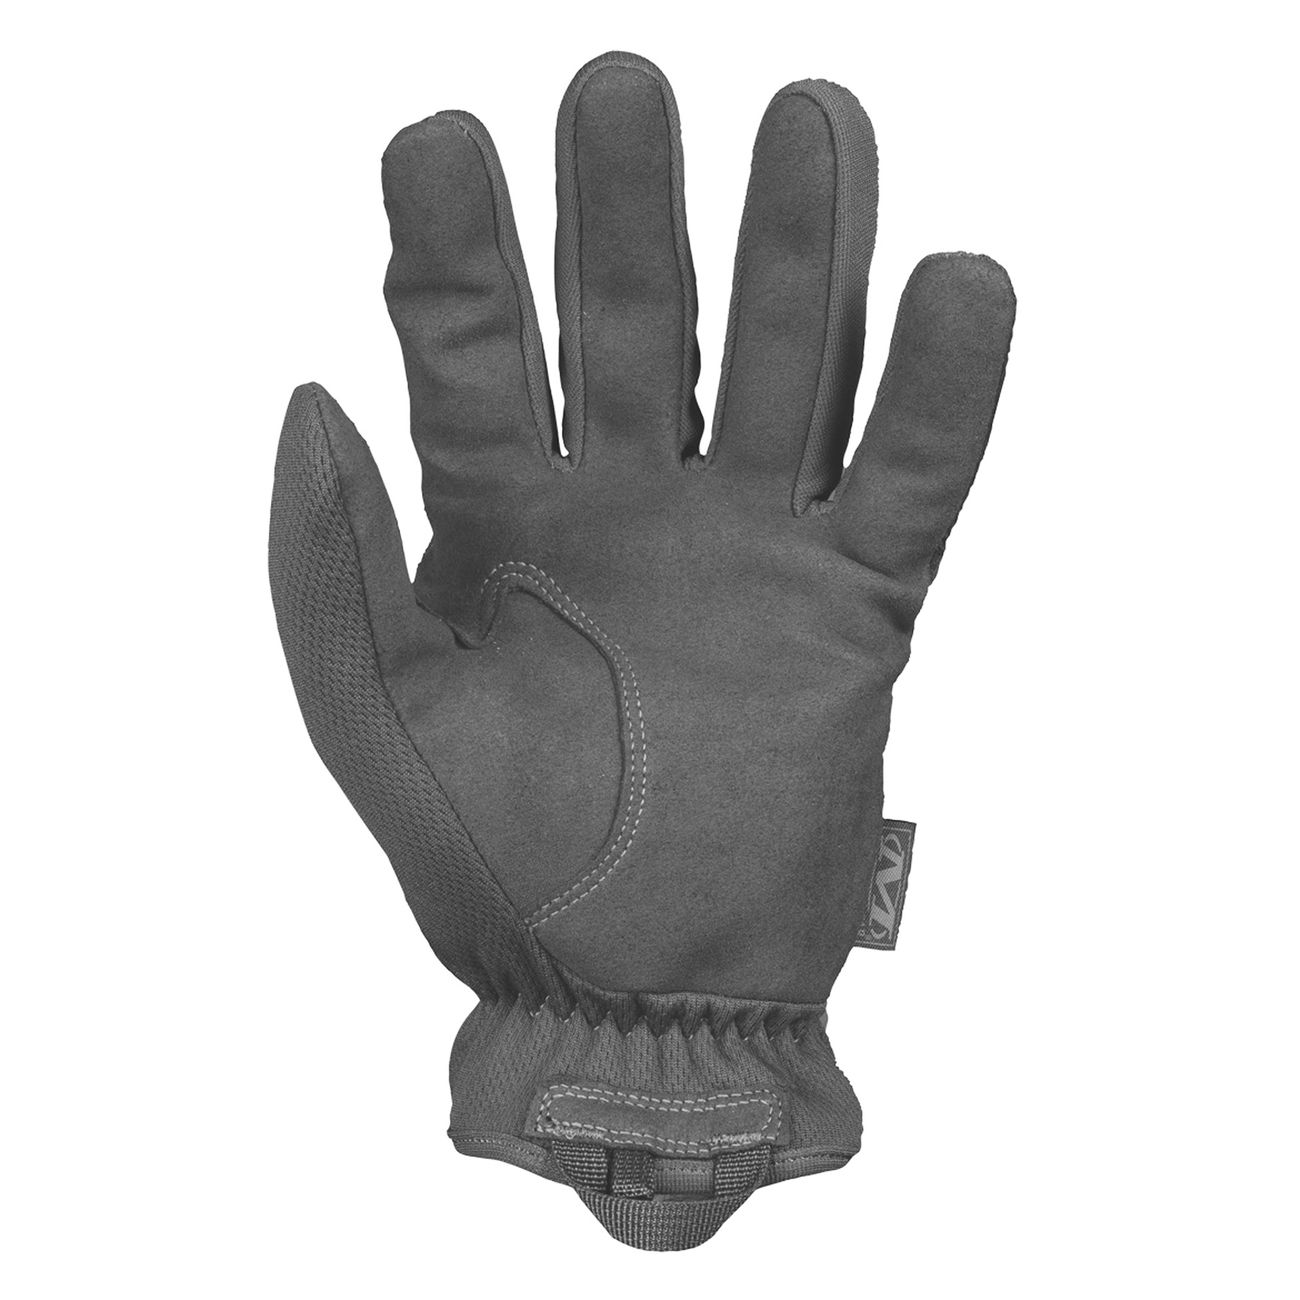 Mechanix Wear FastFit Glove Handschuhe grau 1